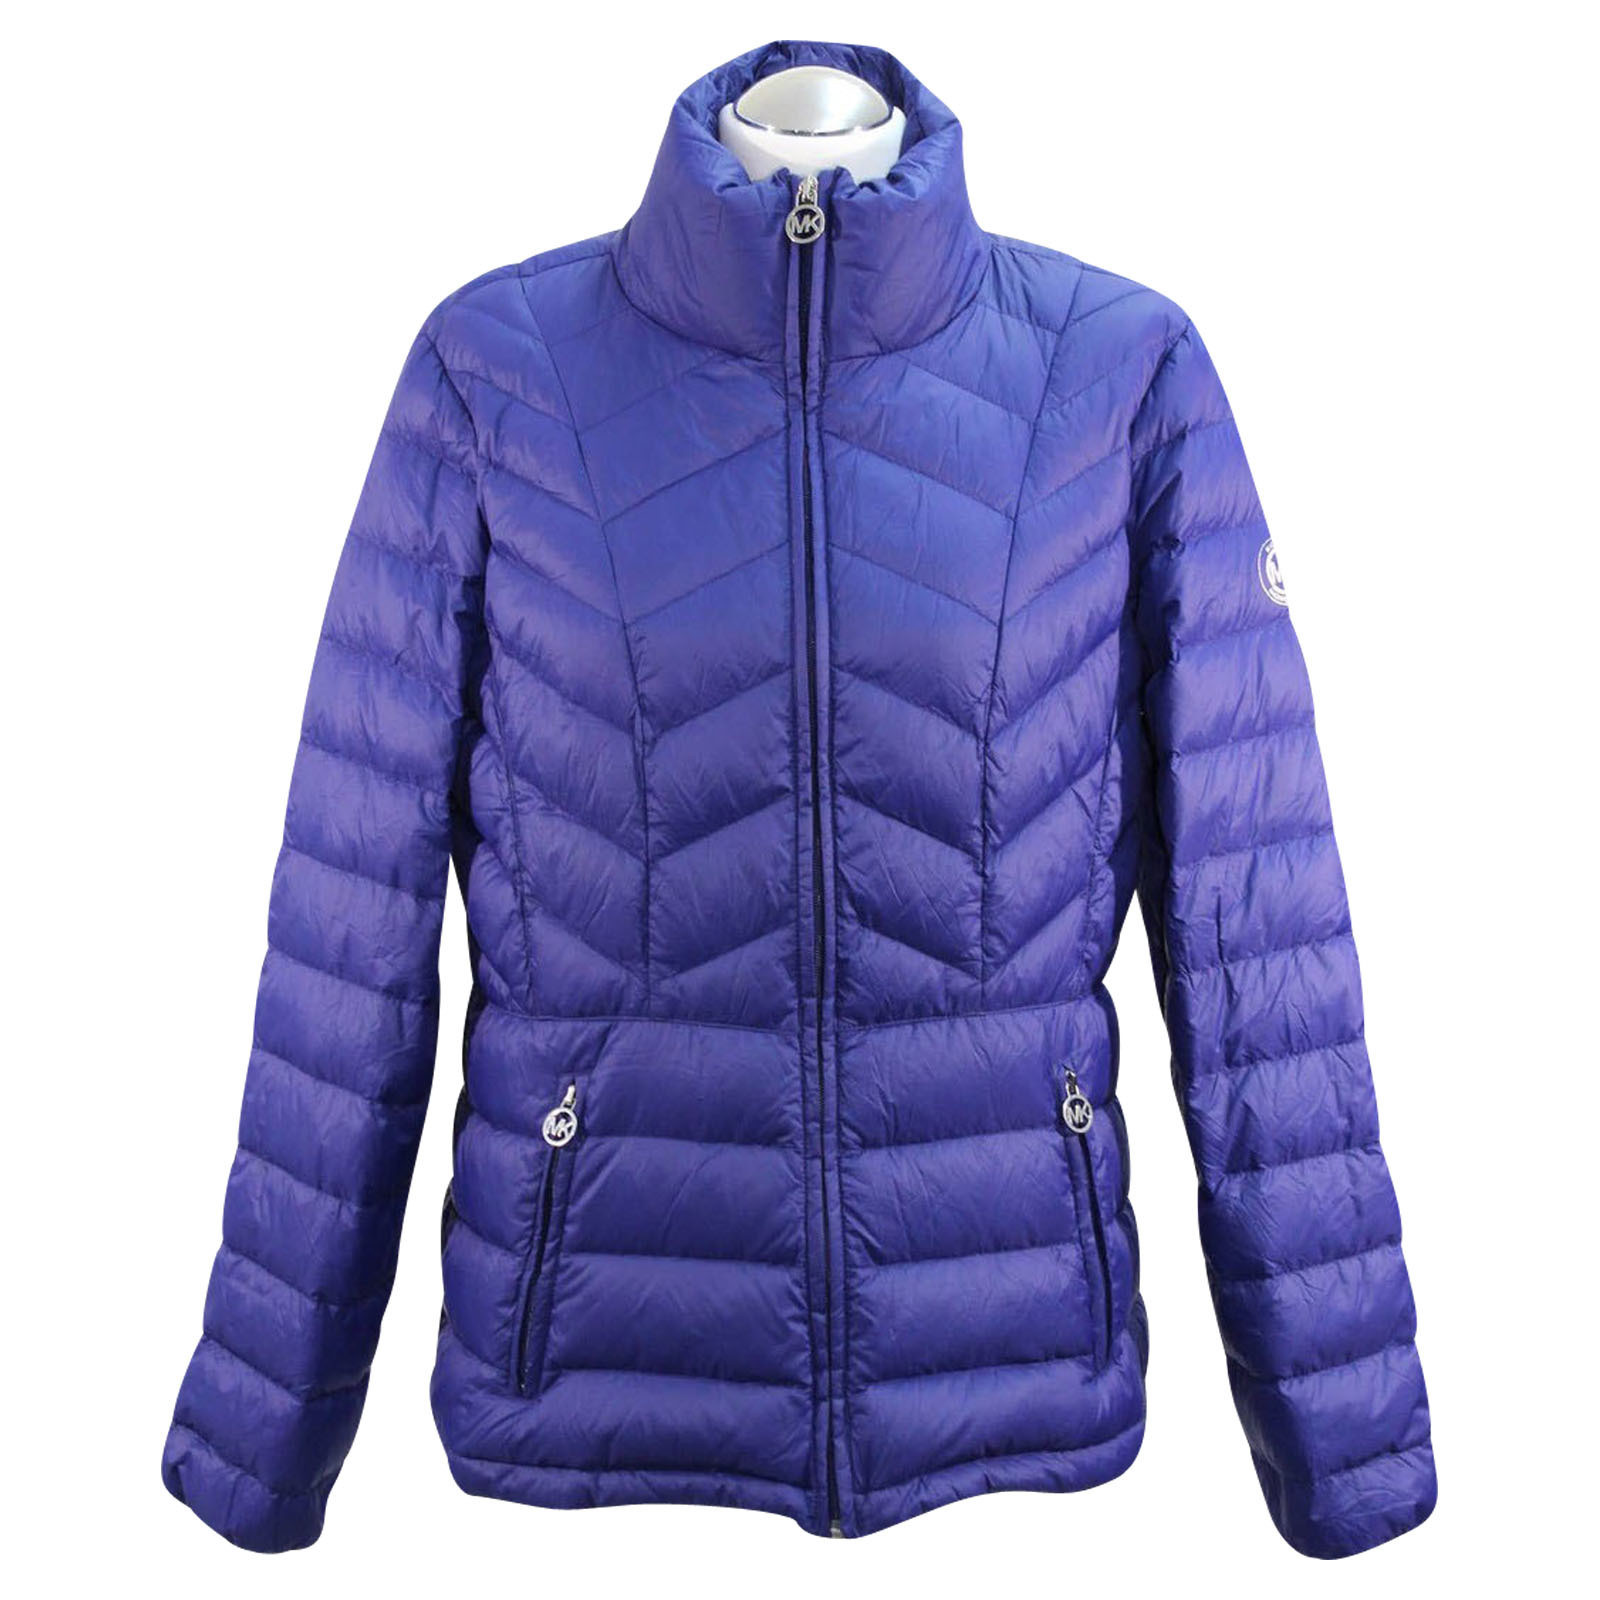 Michael Kors Daunenjacke in Blau Second Hand Michael Kors